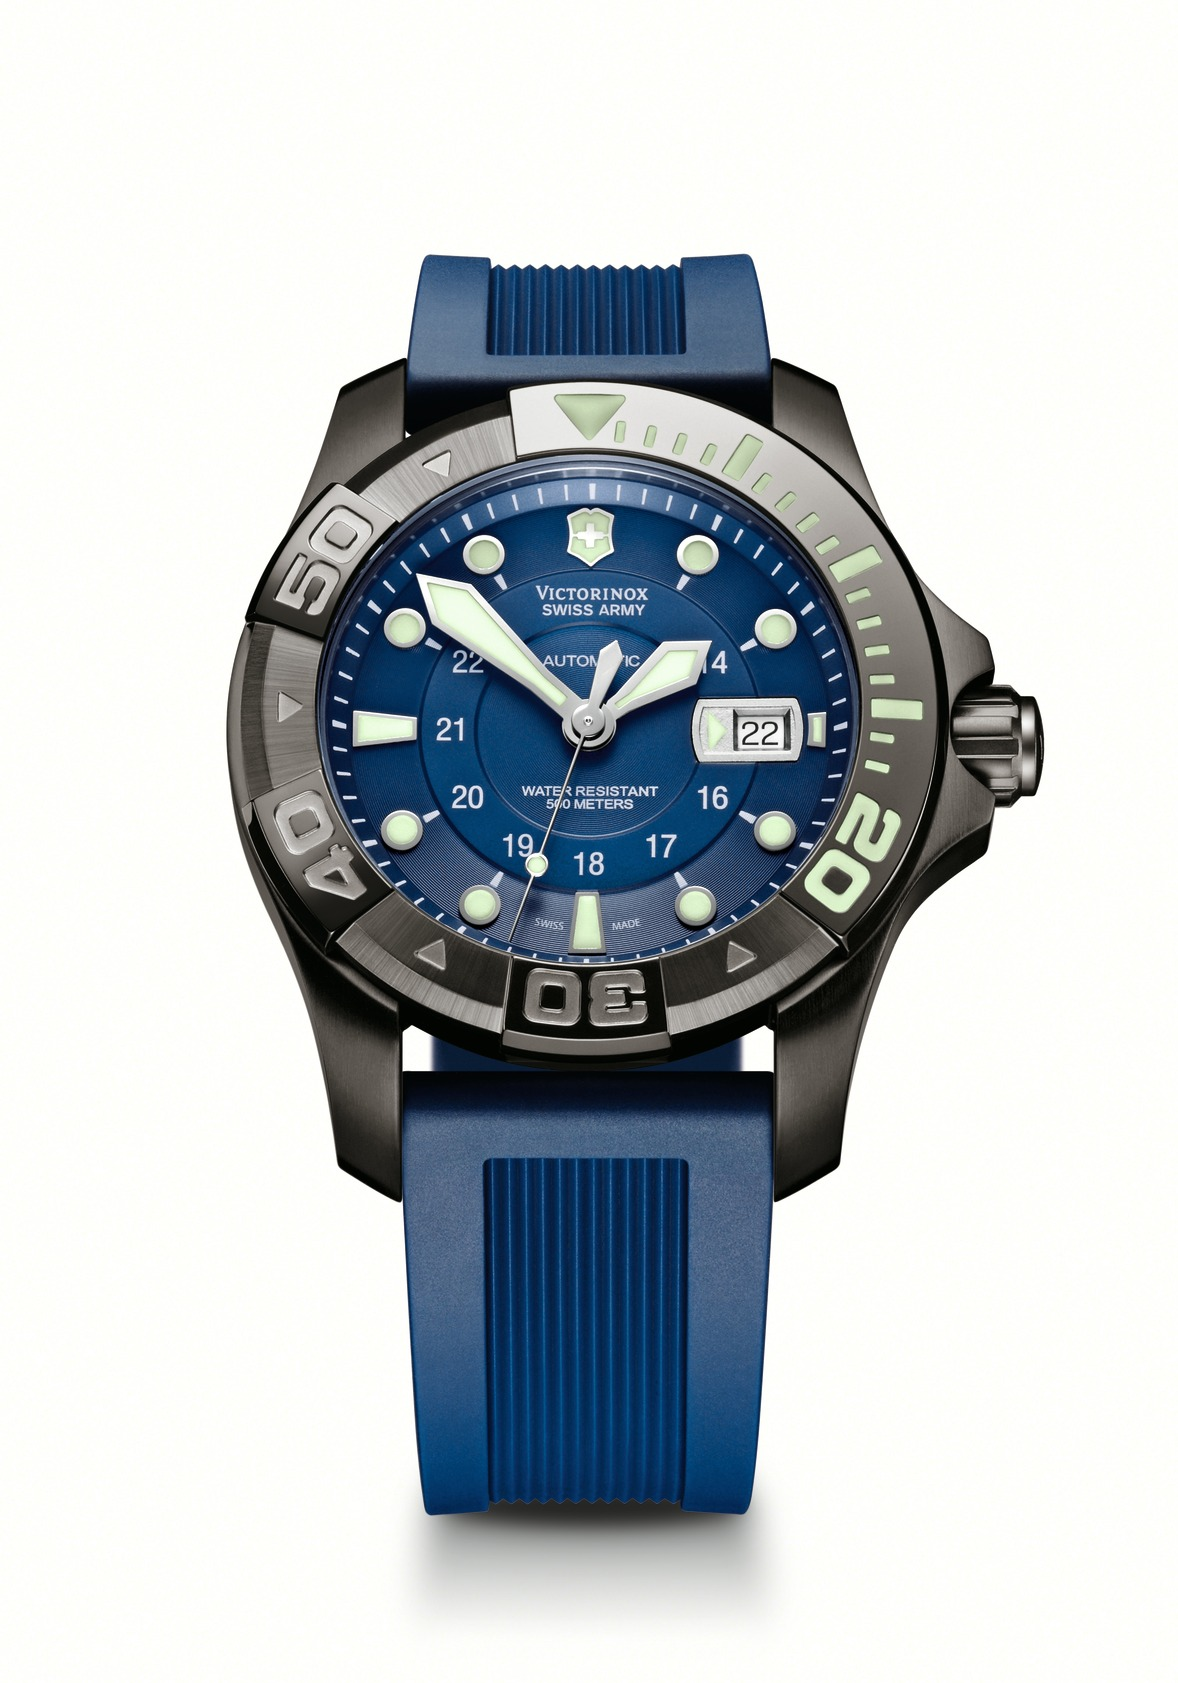 Victorinox swiss army watches victorinox dive master 500 - Sector dive master ...